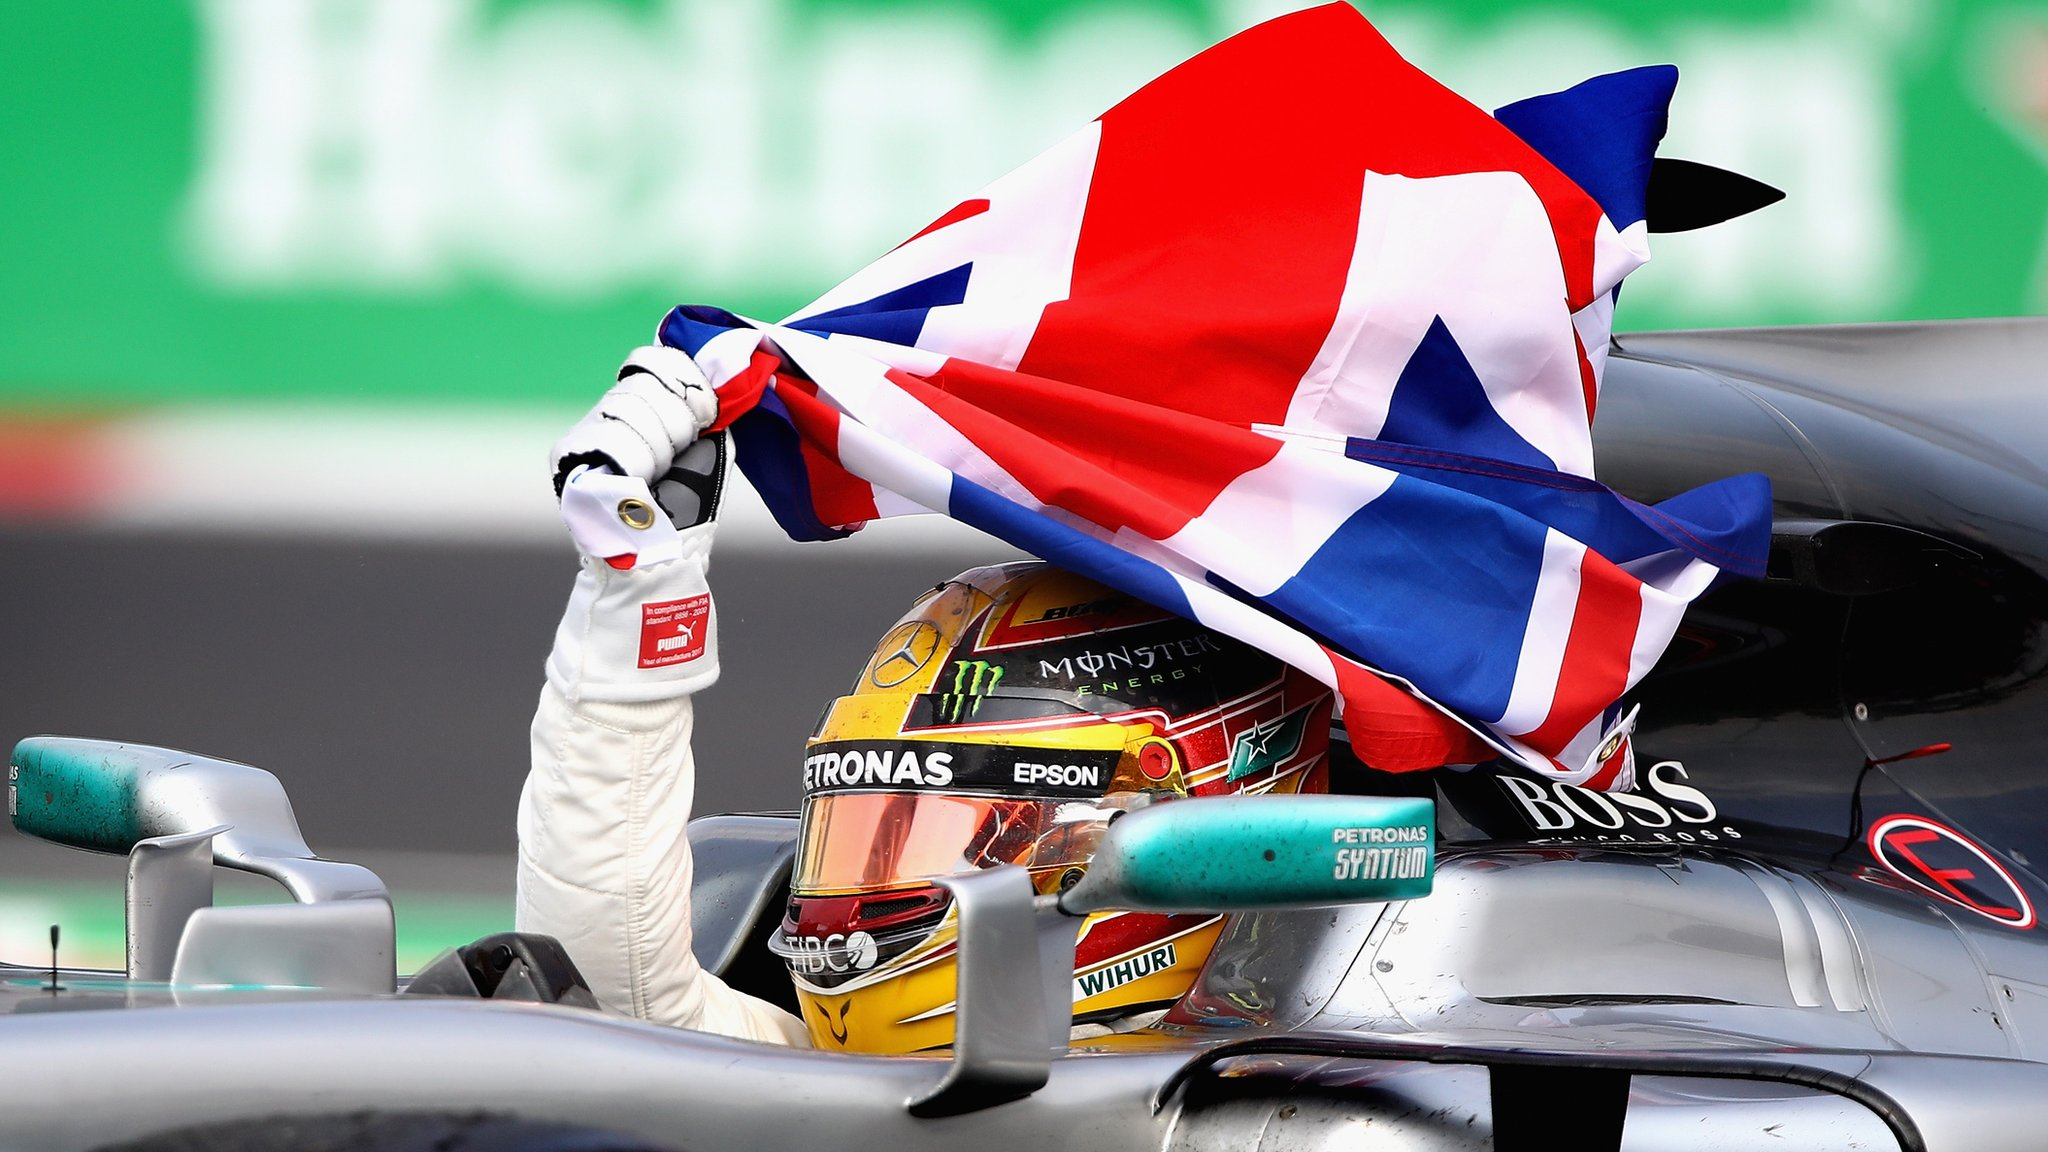 F1 on the BBC: Abu Dhabi Grand Prix radio and online coverage details